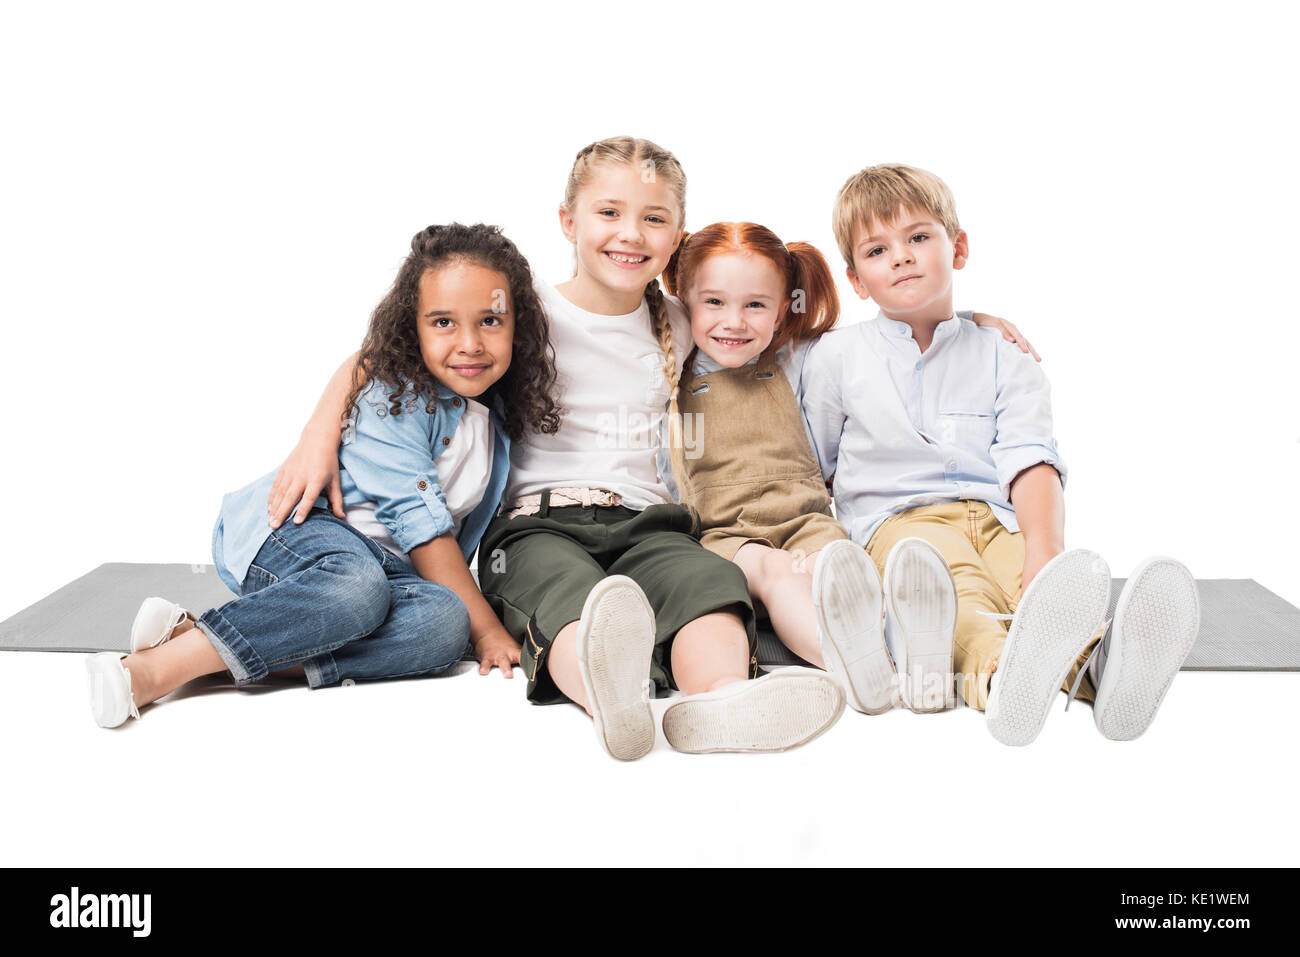 happy multiethnic children sitting together isolated on white - Stock Image